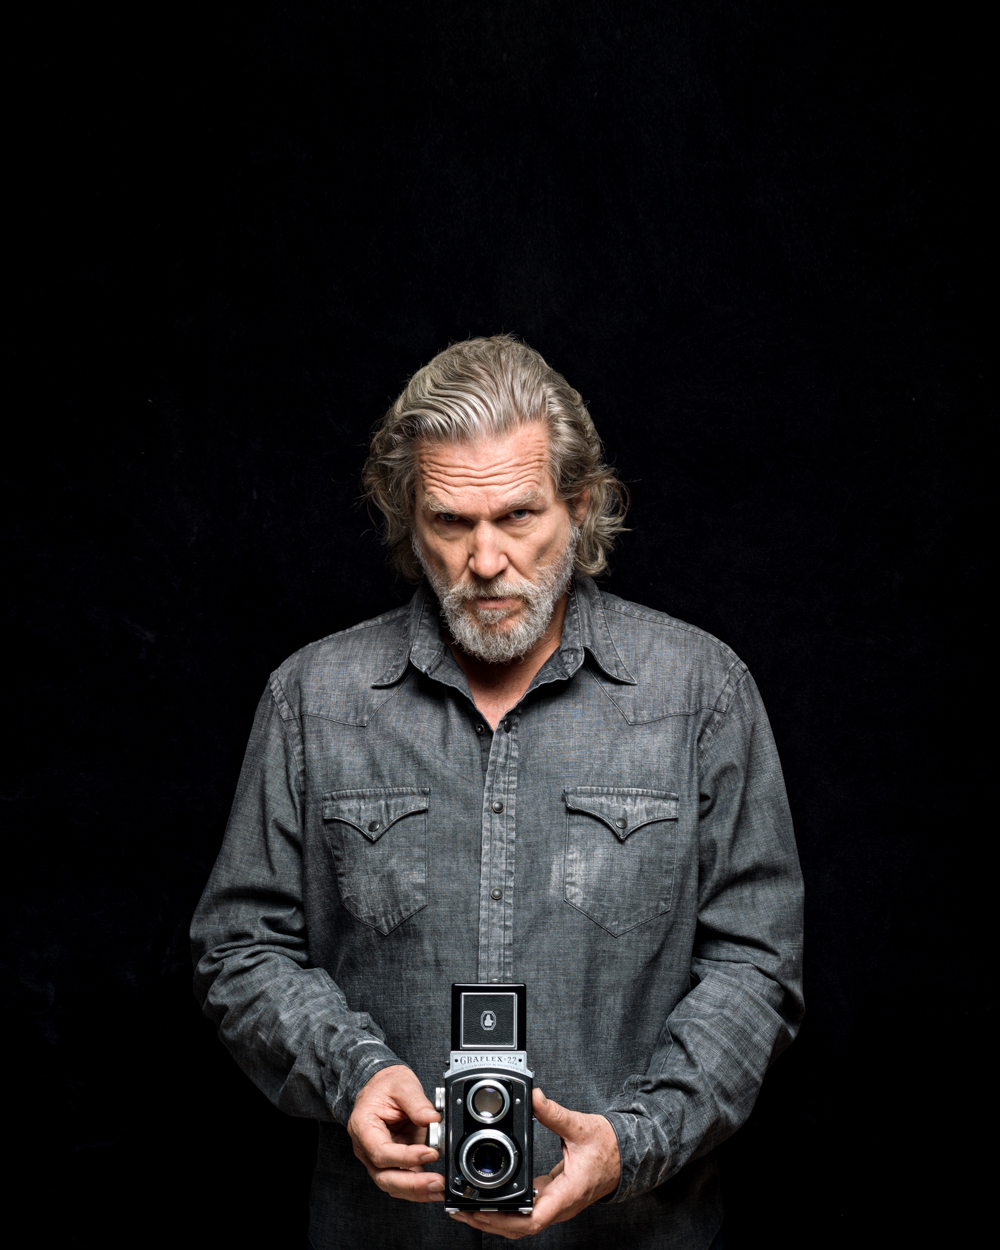 Jeff Bridges for The Wall Street Journal